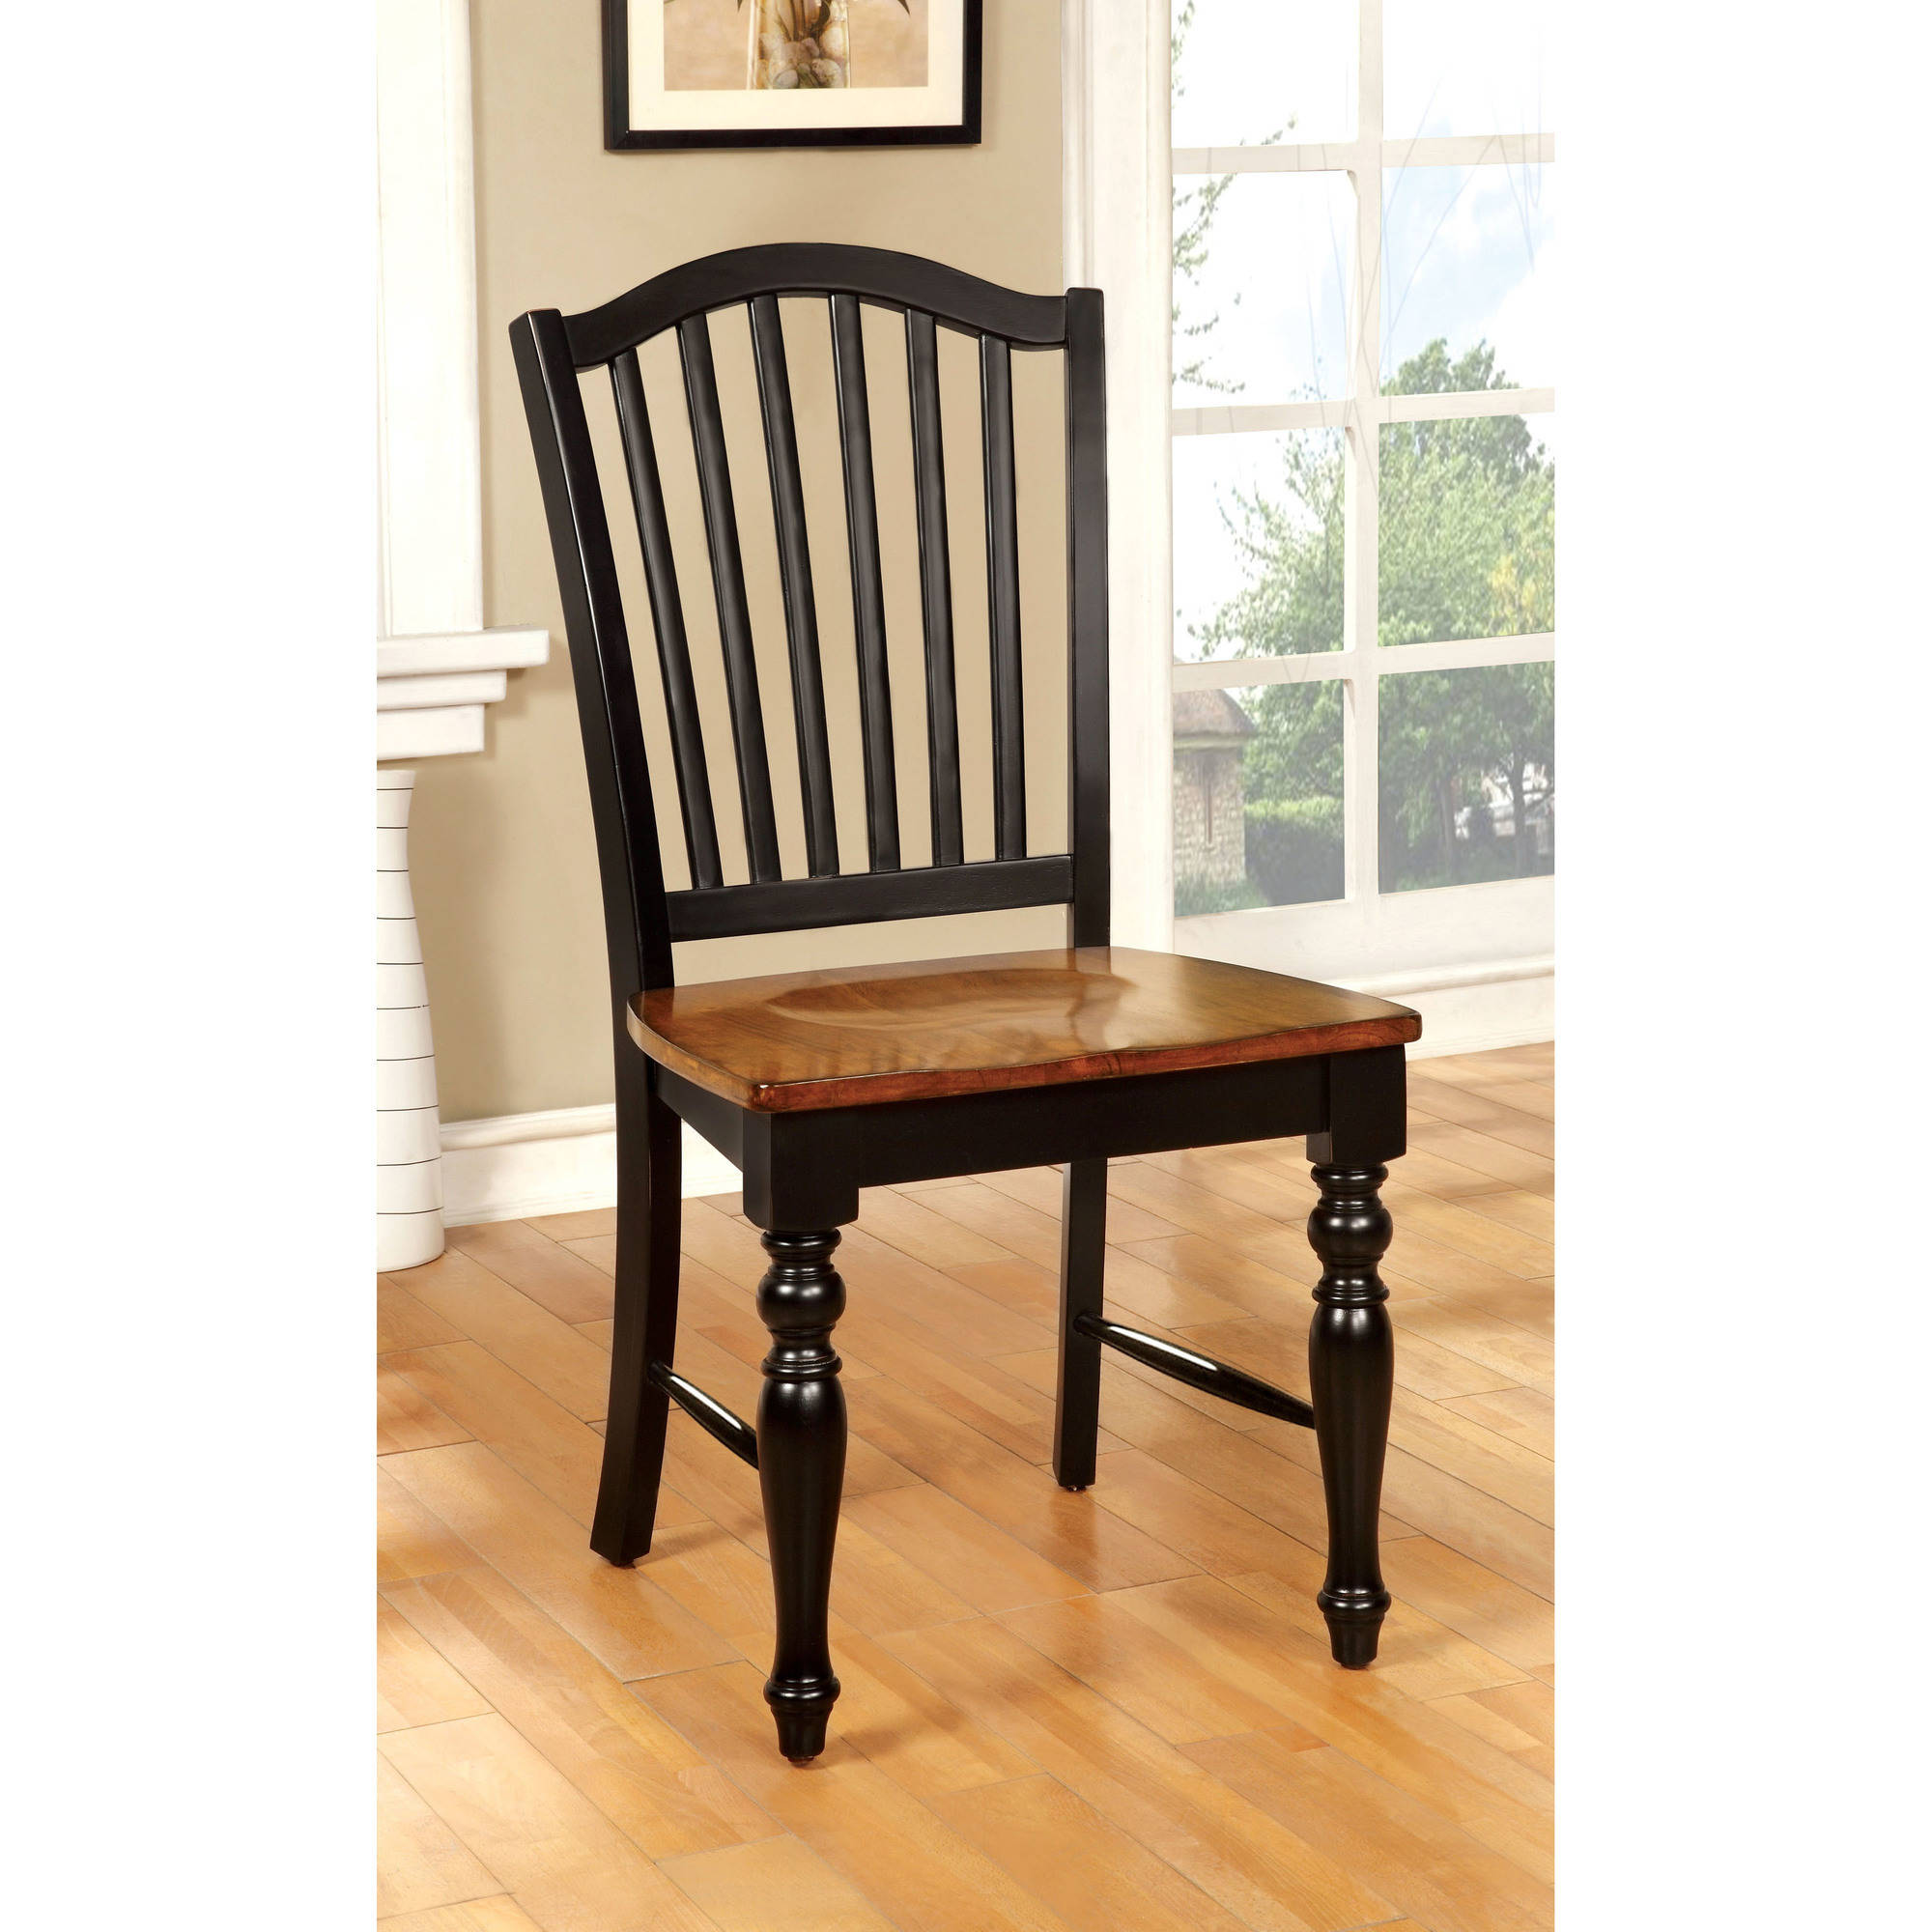 antique oak dining chairs classical guitar chair furniture of america nancy country two tone black 2pk walmart com